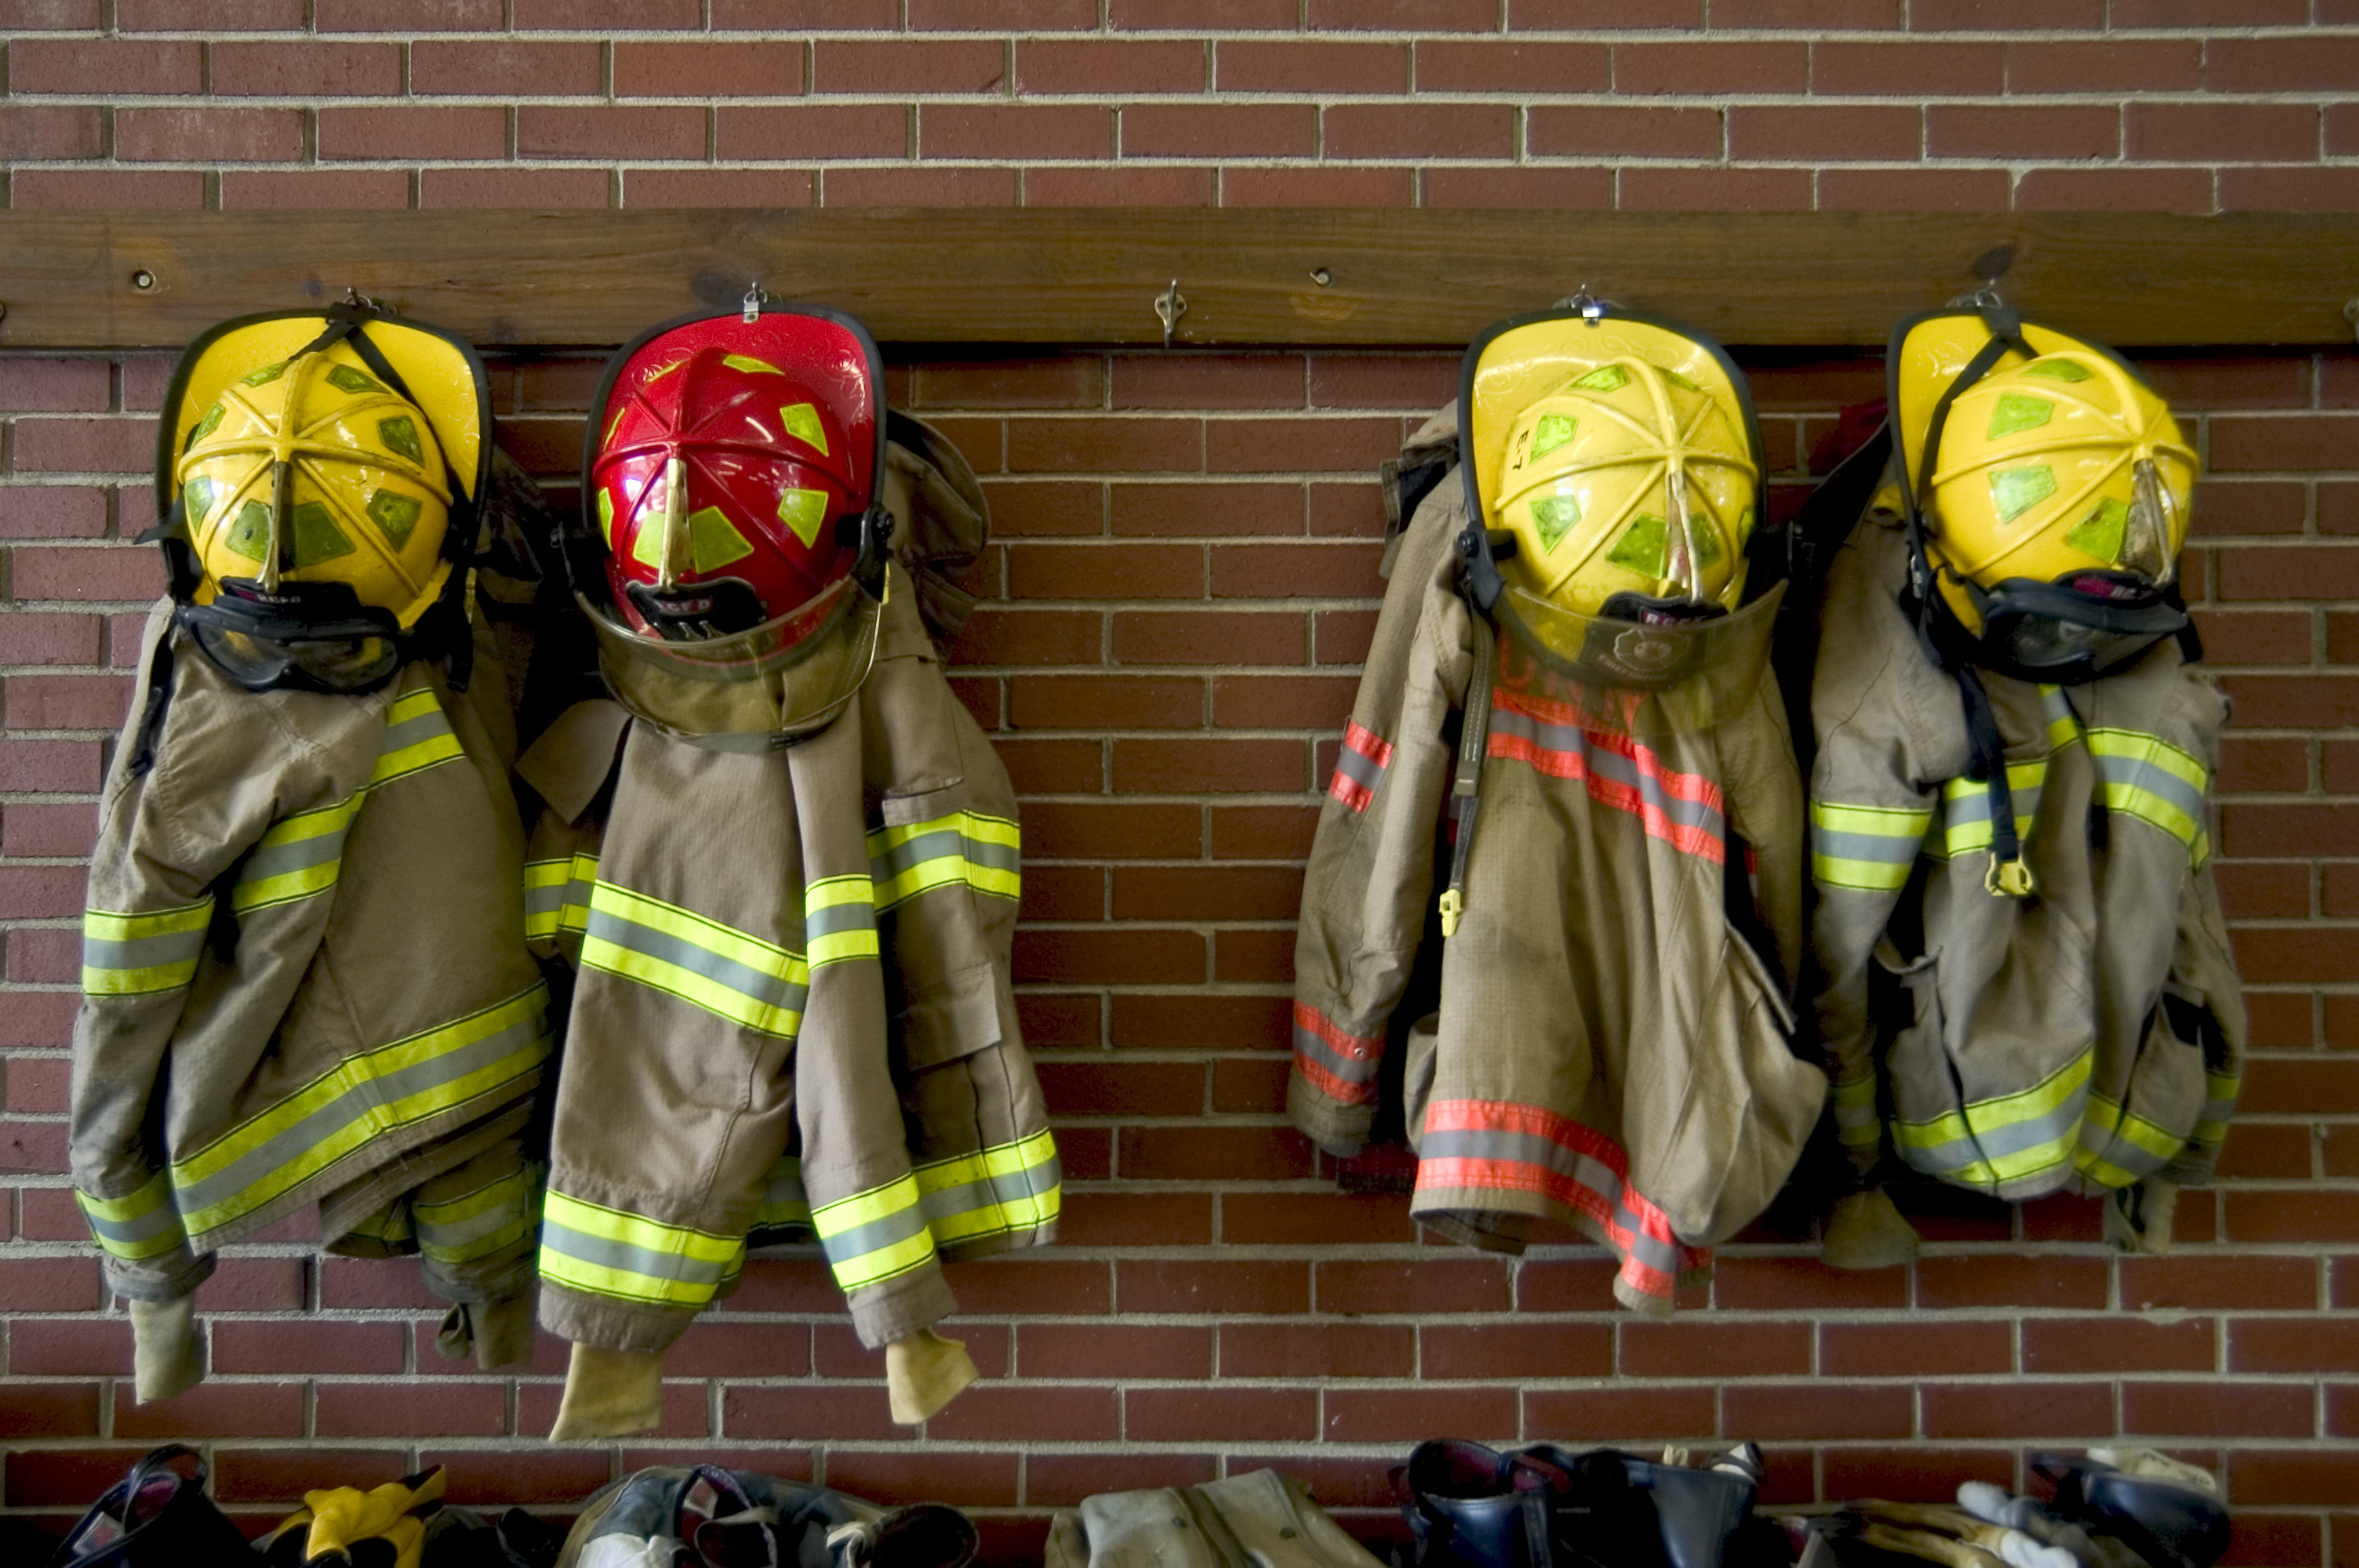 Fire Department helmets and fire suits